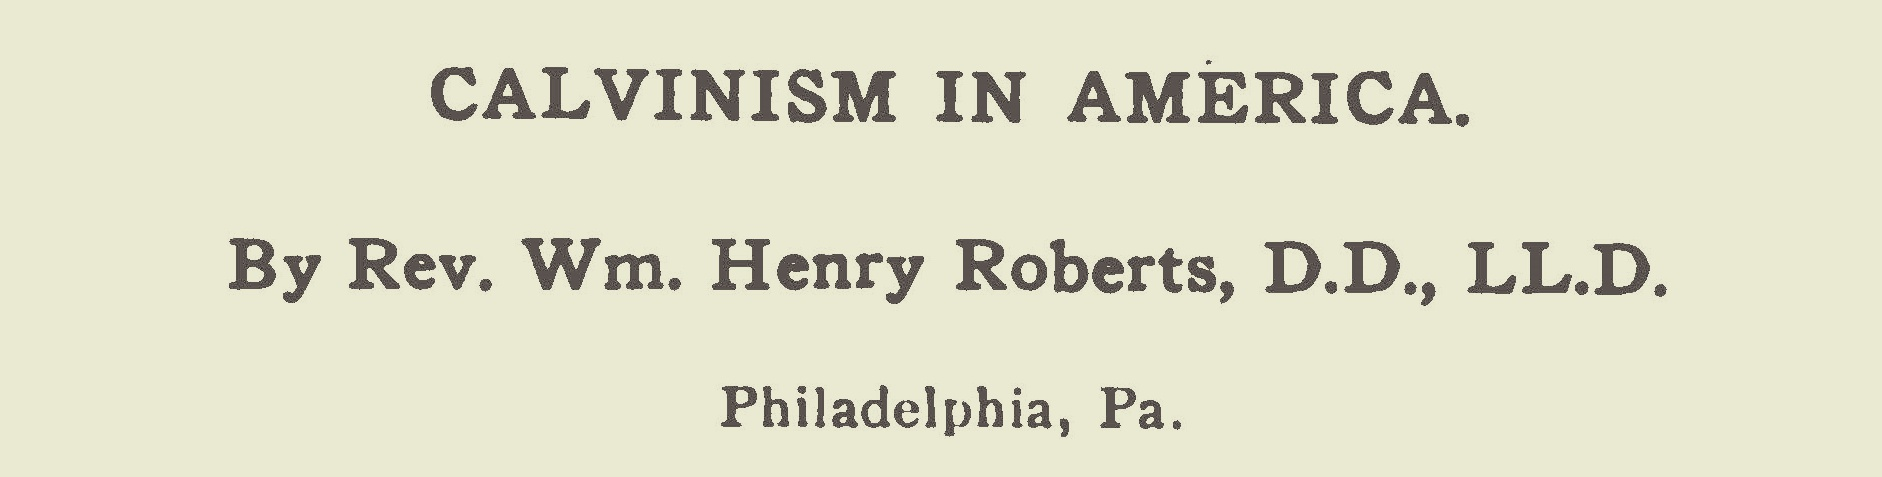 Roberts, William Henry, Calvin's Influence on America Title Page.jpg